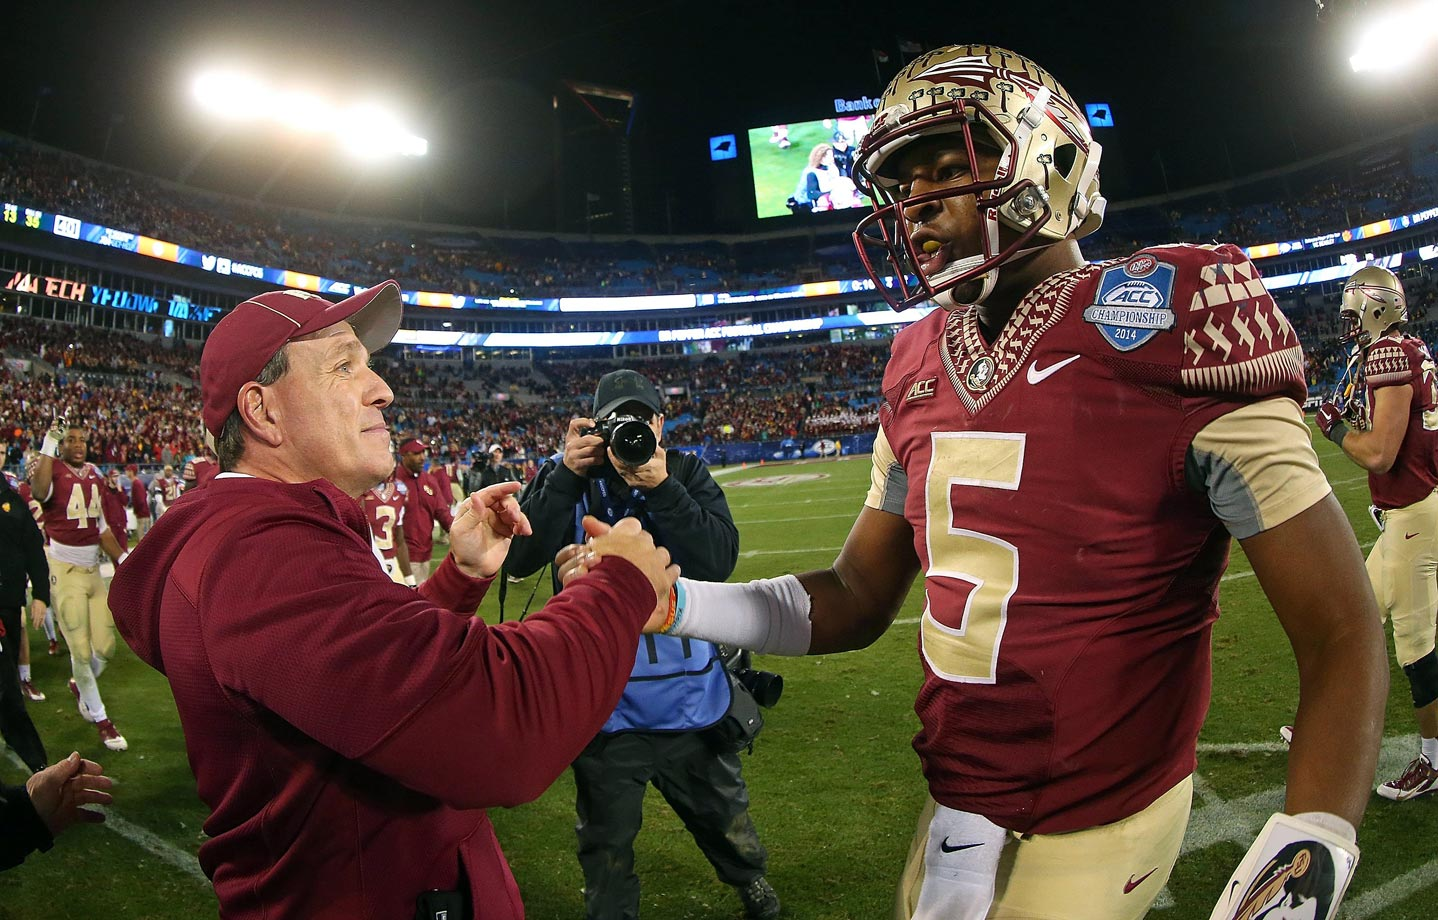 Winston rebounded from his dismal outing against Florida to throw for 309 yards and three touchdowns, and the Seminoles claimed the ACC title. Georgia Tech's triple-option attack churned up 331 yards on the ground but couldn't keep pace with an in-sync Florida State offense.